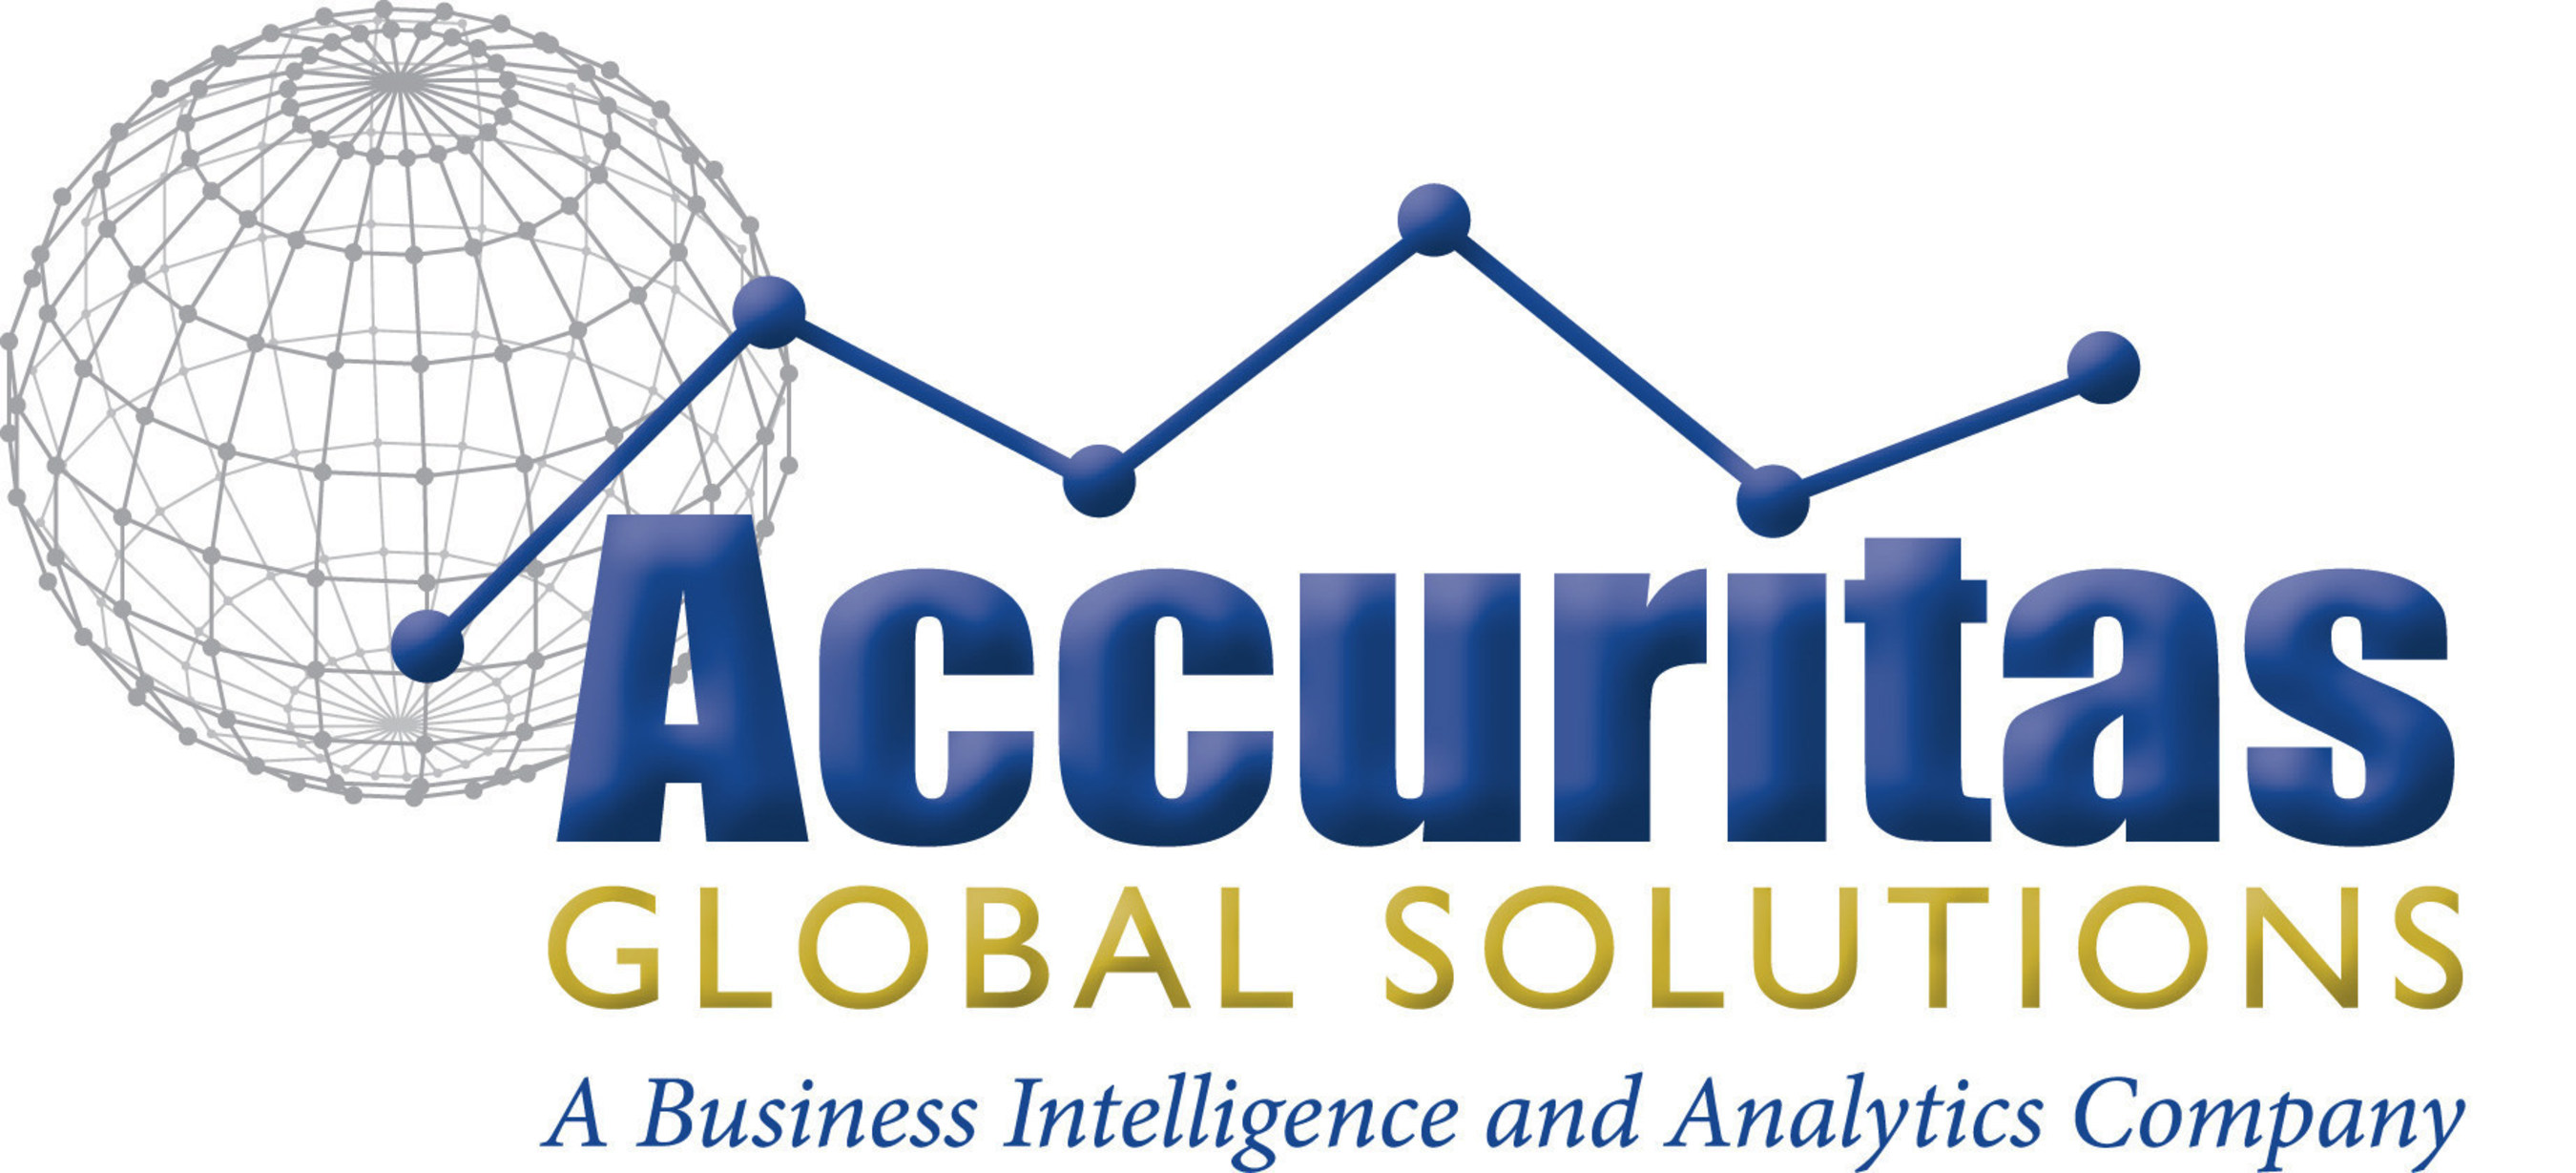 Accuritas Global Solutions Selected as a Finalist for the 2016 Lloyd's List  Global Big Data Award